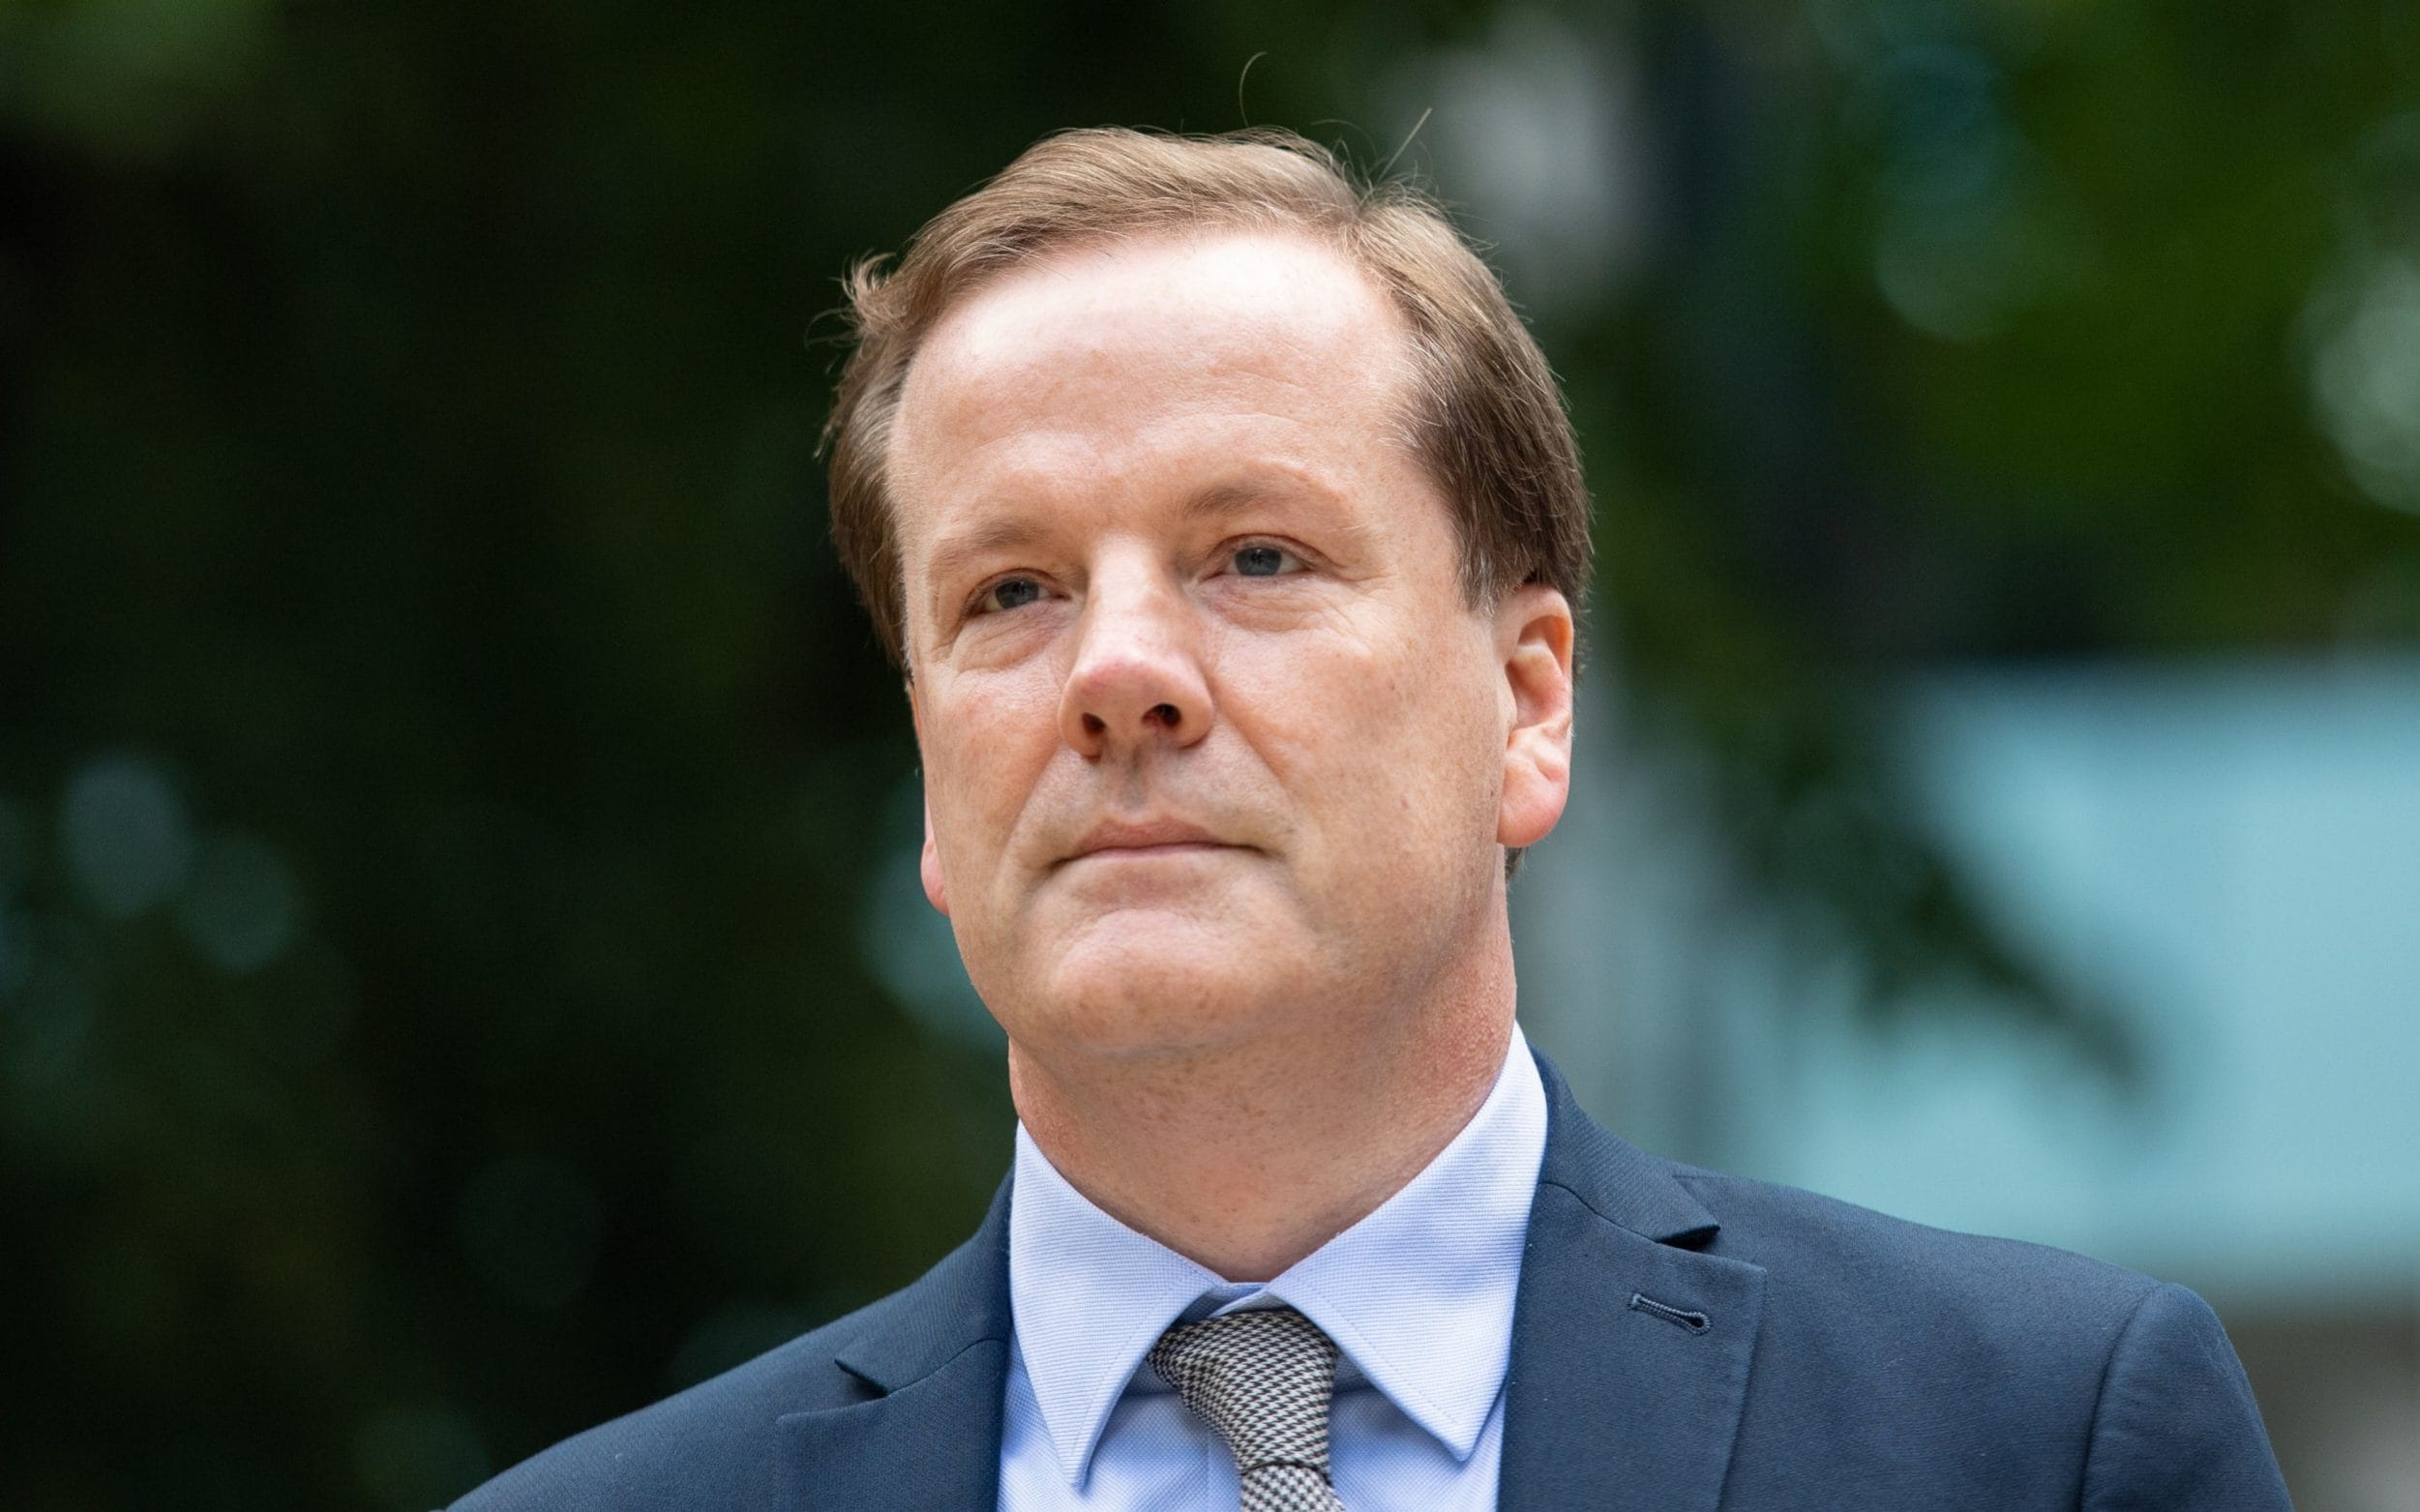 Charlie Elphicke S Wife Dumps Him On Twitter After He Is